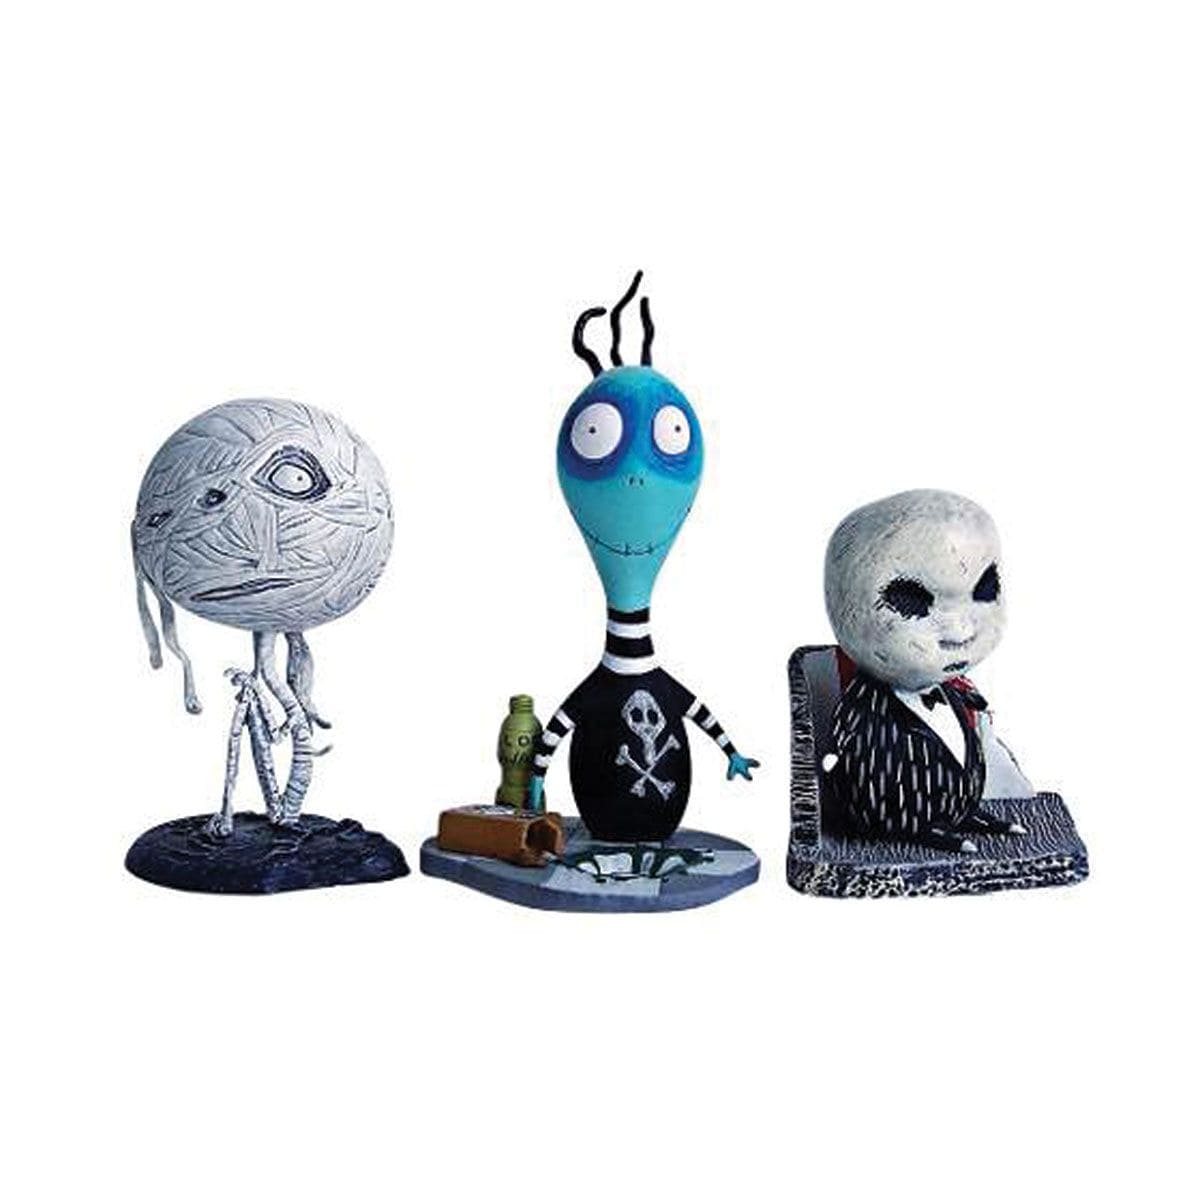 Tim Burton Set 2 - Toxic Boy - Dark Horse